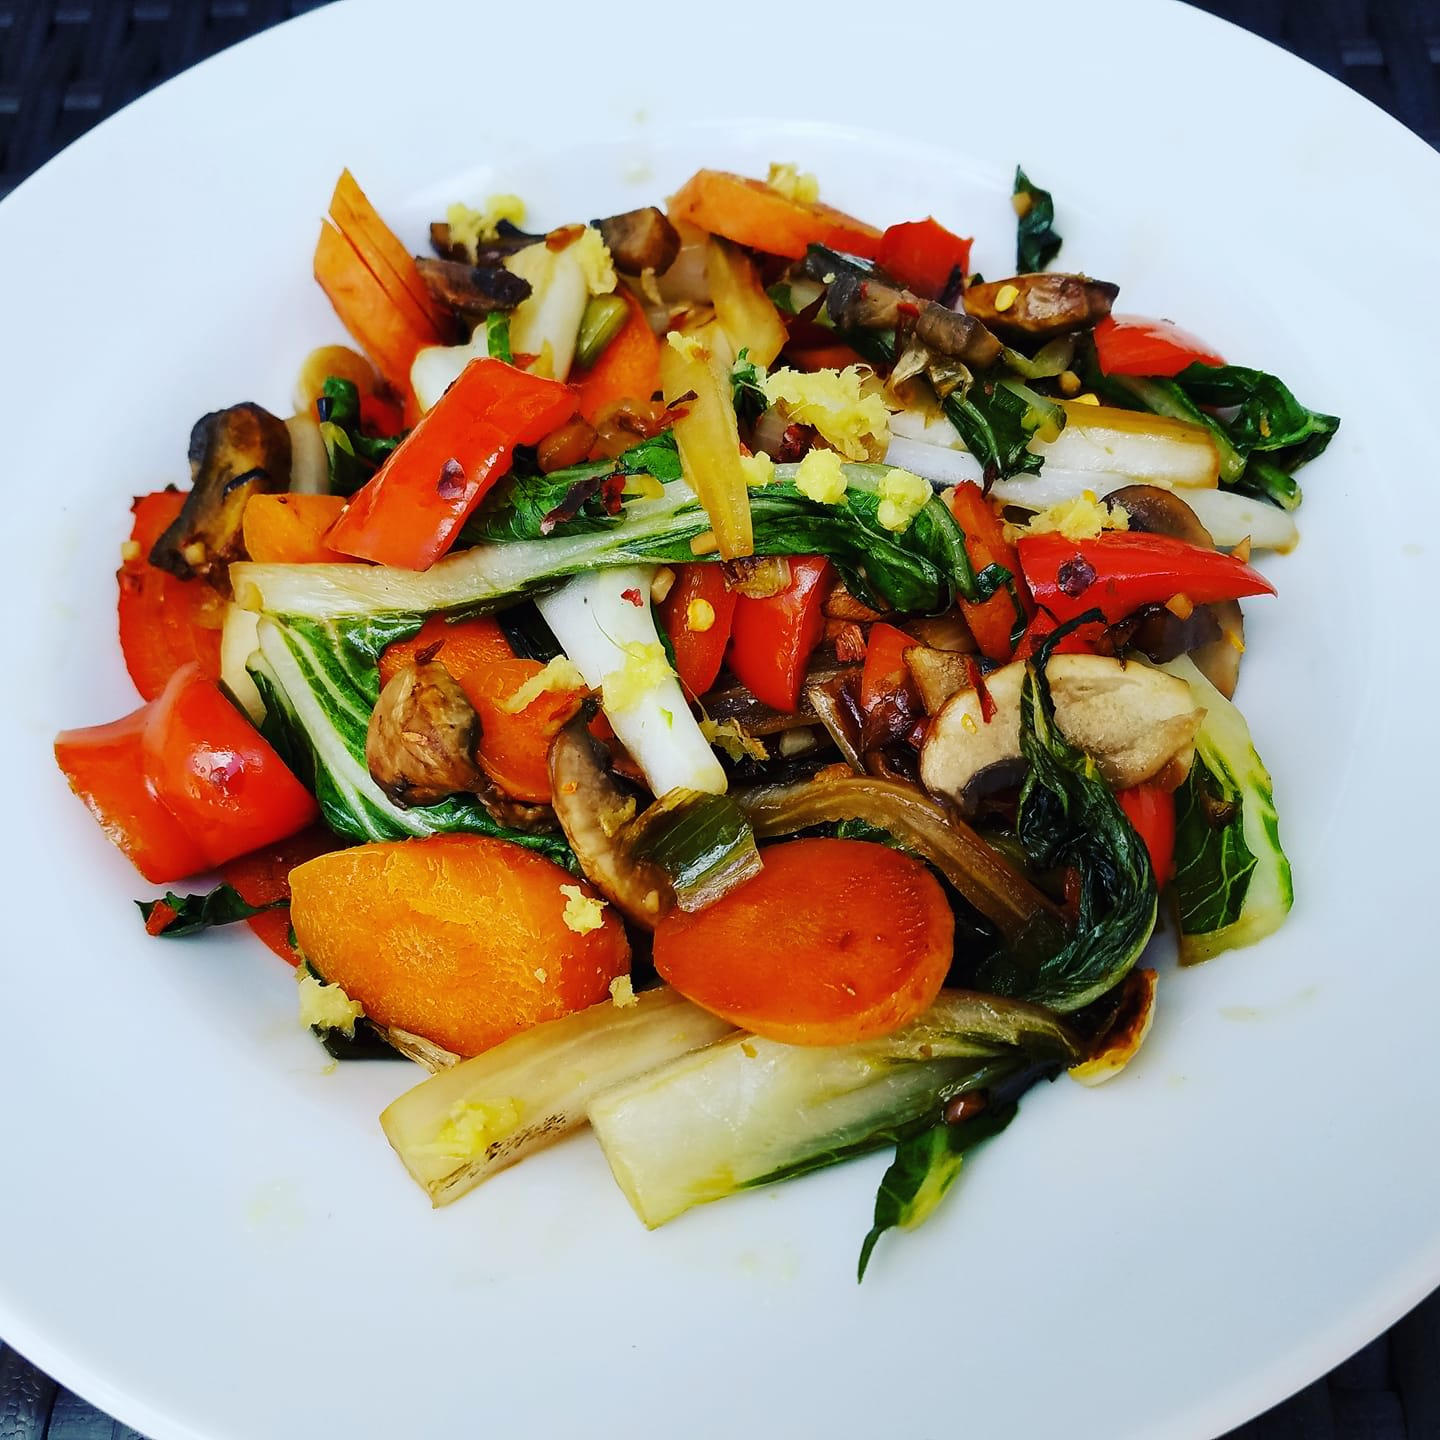 Rainbow stir fry. https://www.wocdetox.com/summer-5-day-detox.html